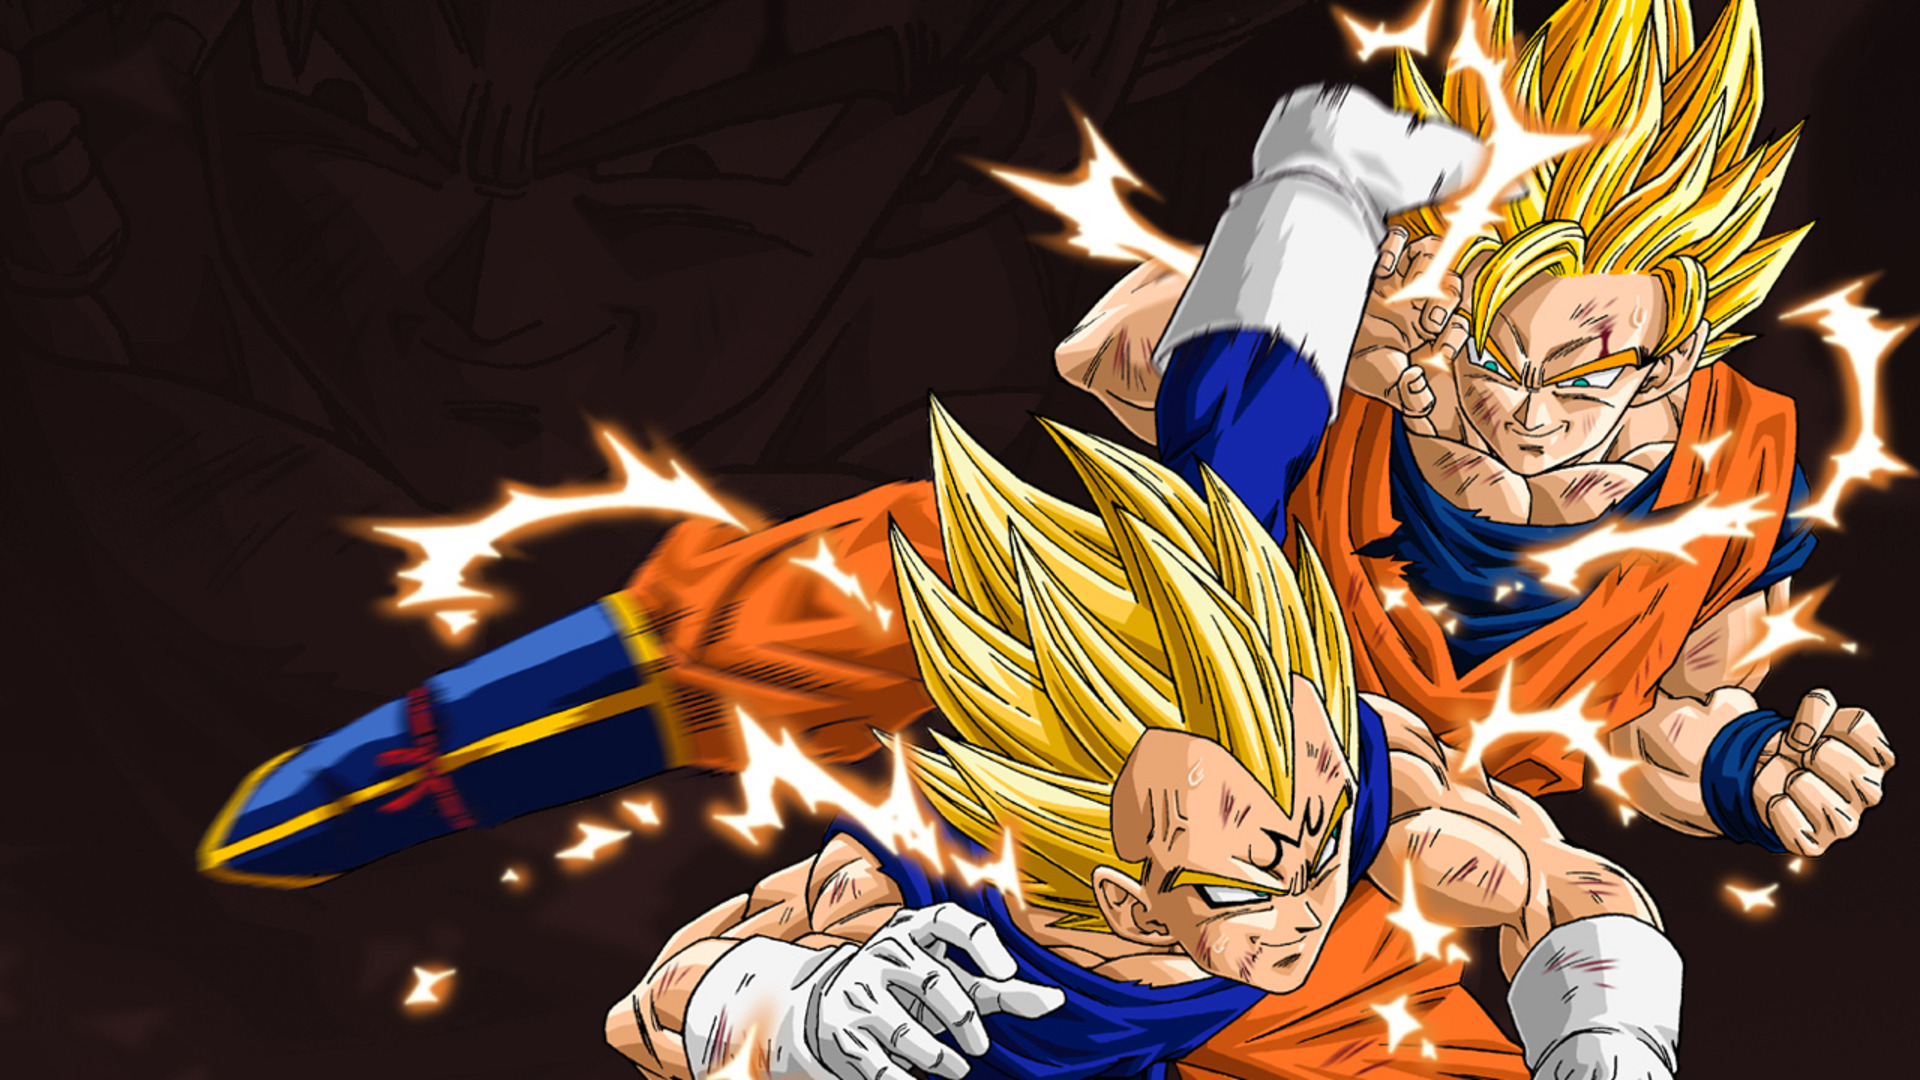 Goku Vegeta Wallpaper   Dragon Ball Z Wallpaper 35713309 1920x1080